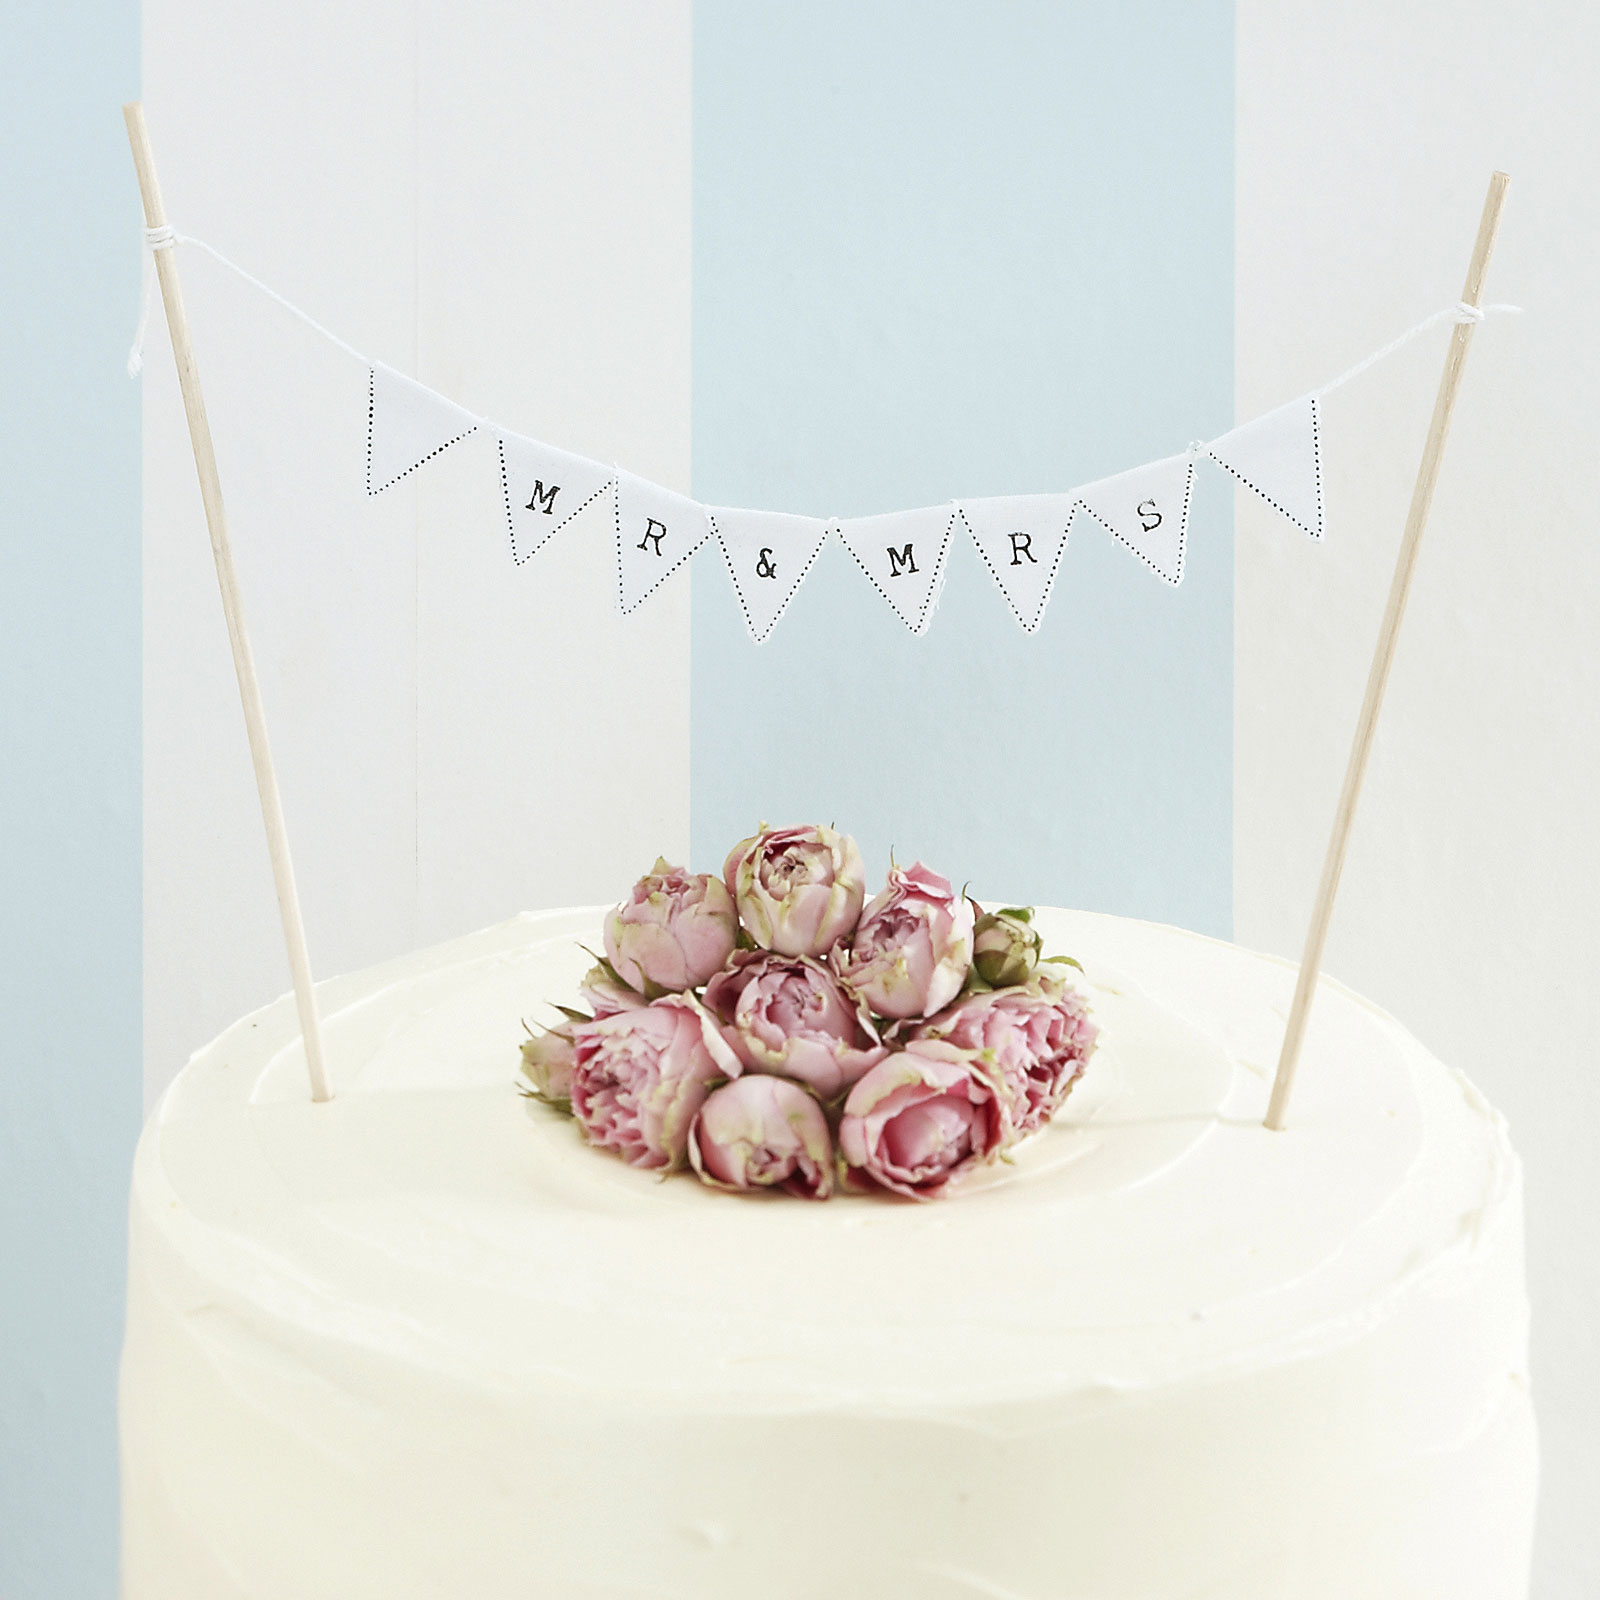 Vintage Lace Mr and Mrs Cake Bunting